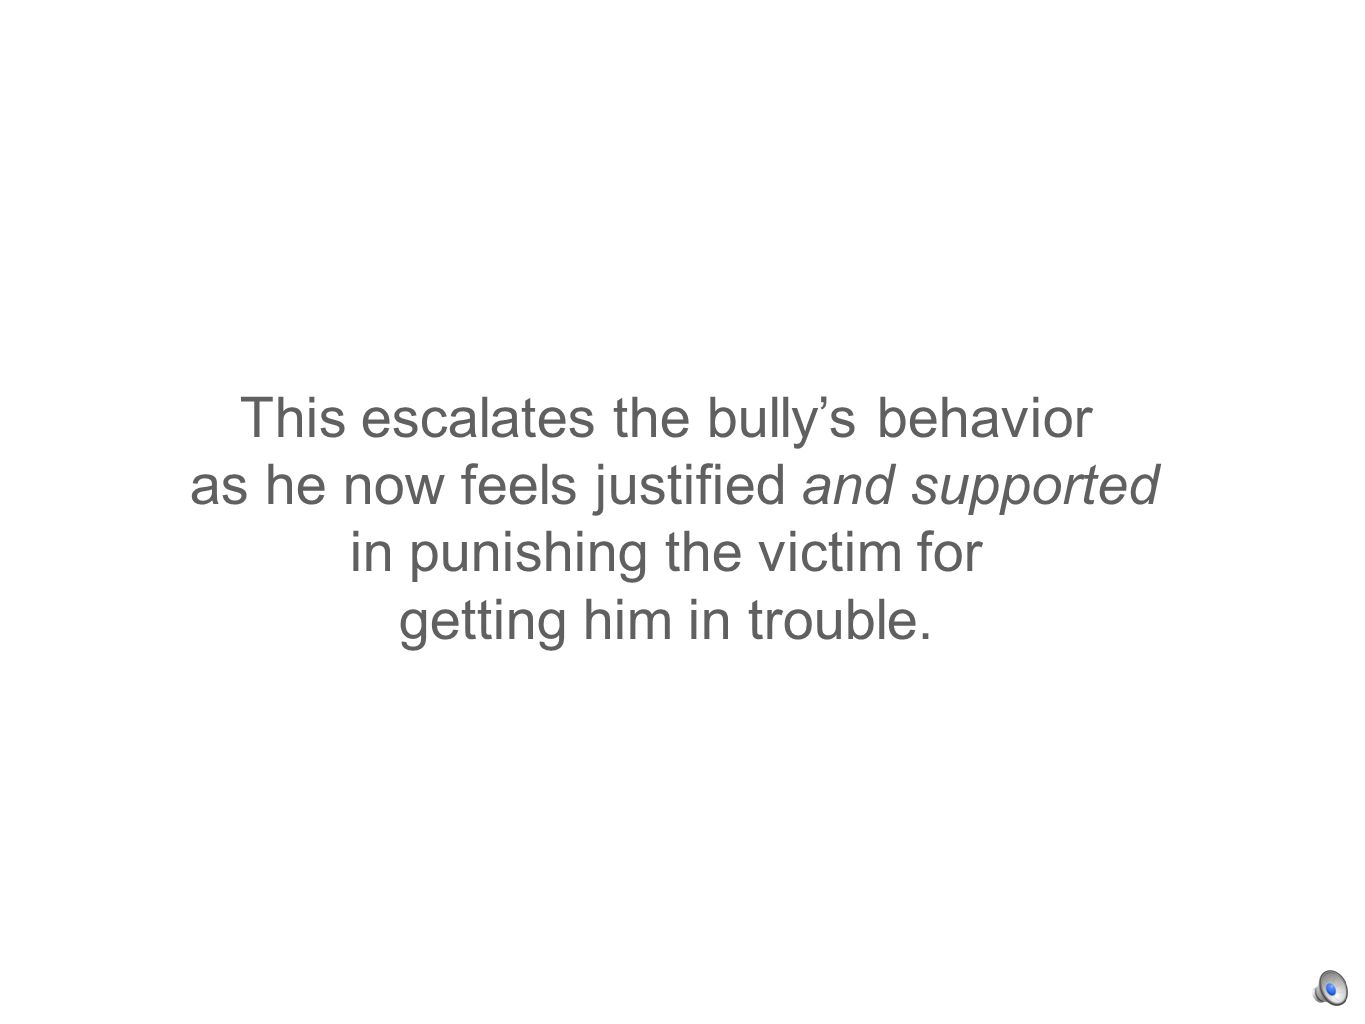 This escalates the bullys behavior as he now feels justified and supported in punishing the victim for getting him in trouble.